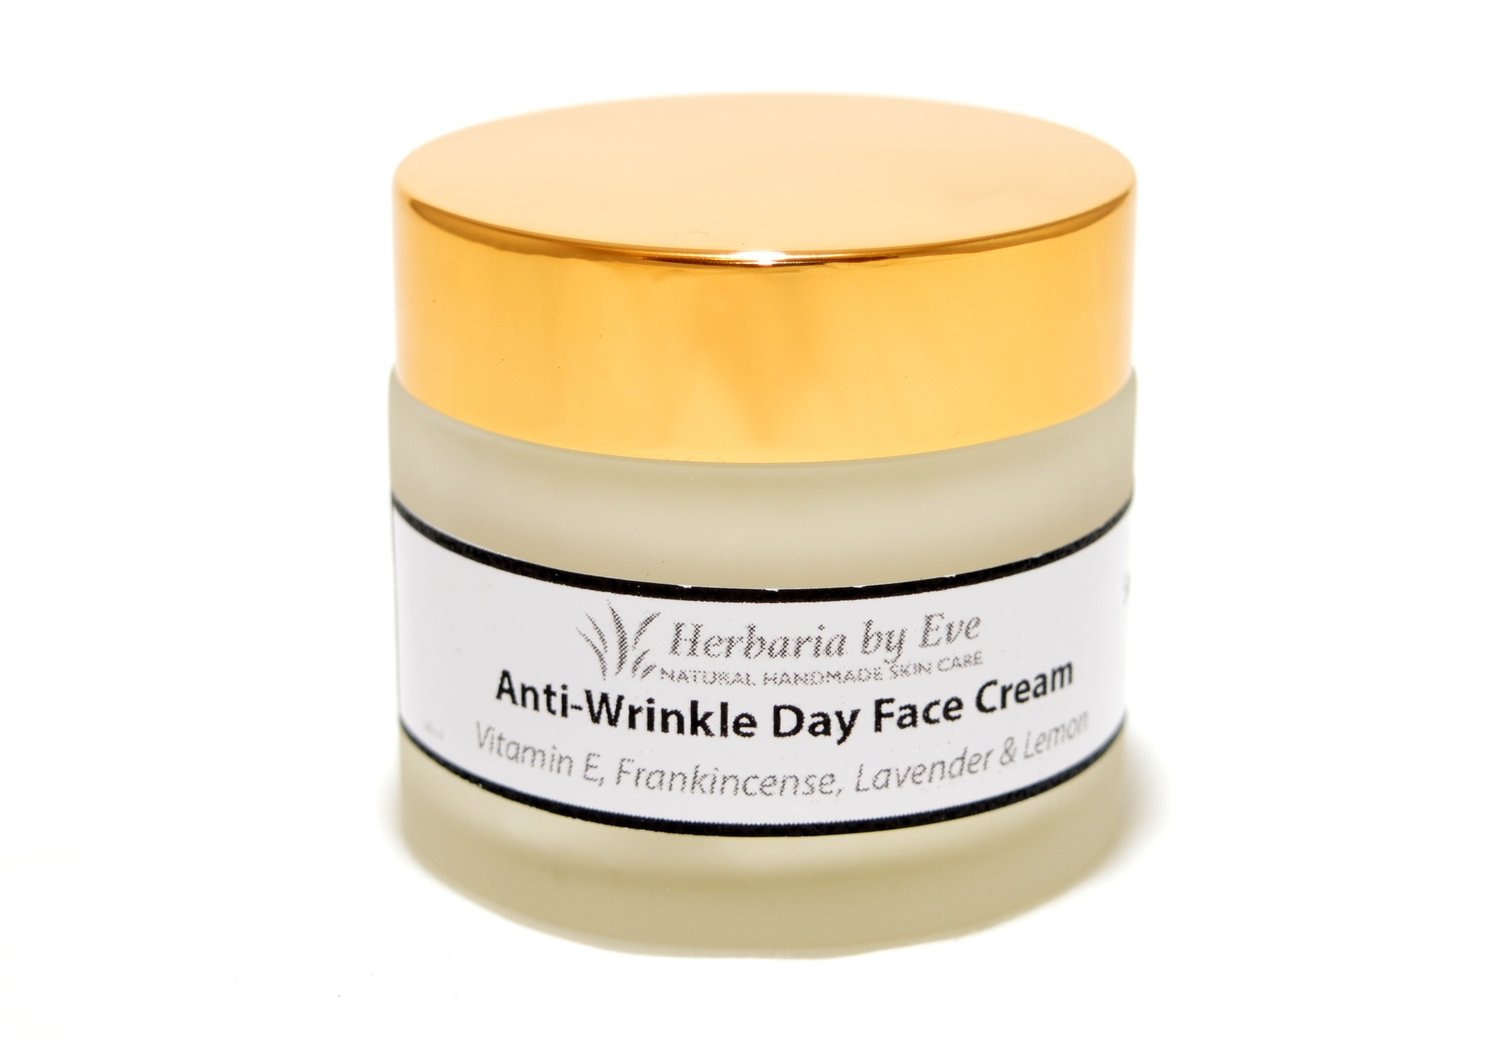 Anti-Wrinkle Day Face Cream